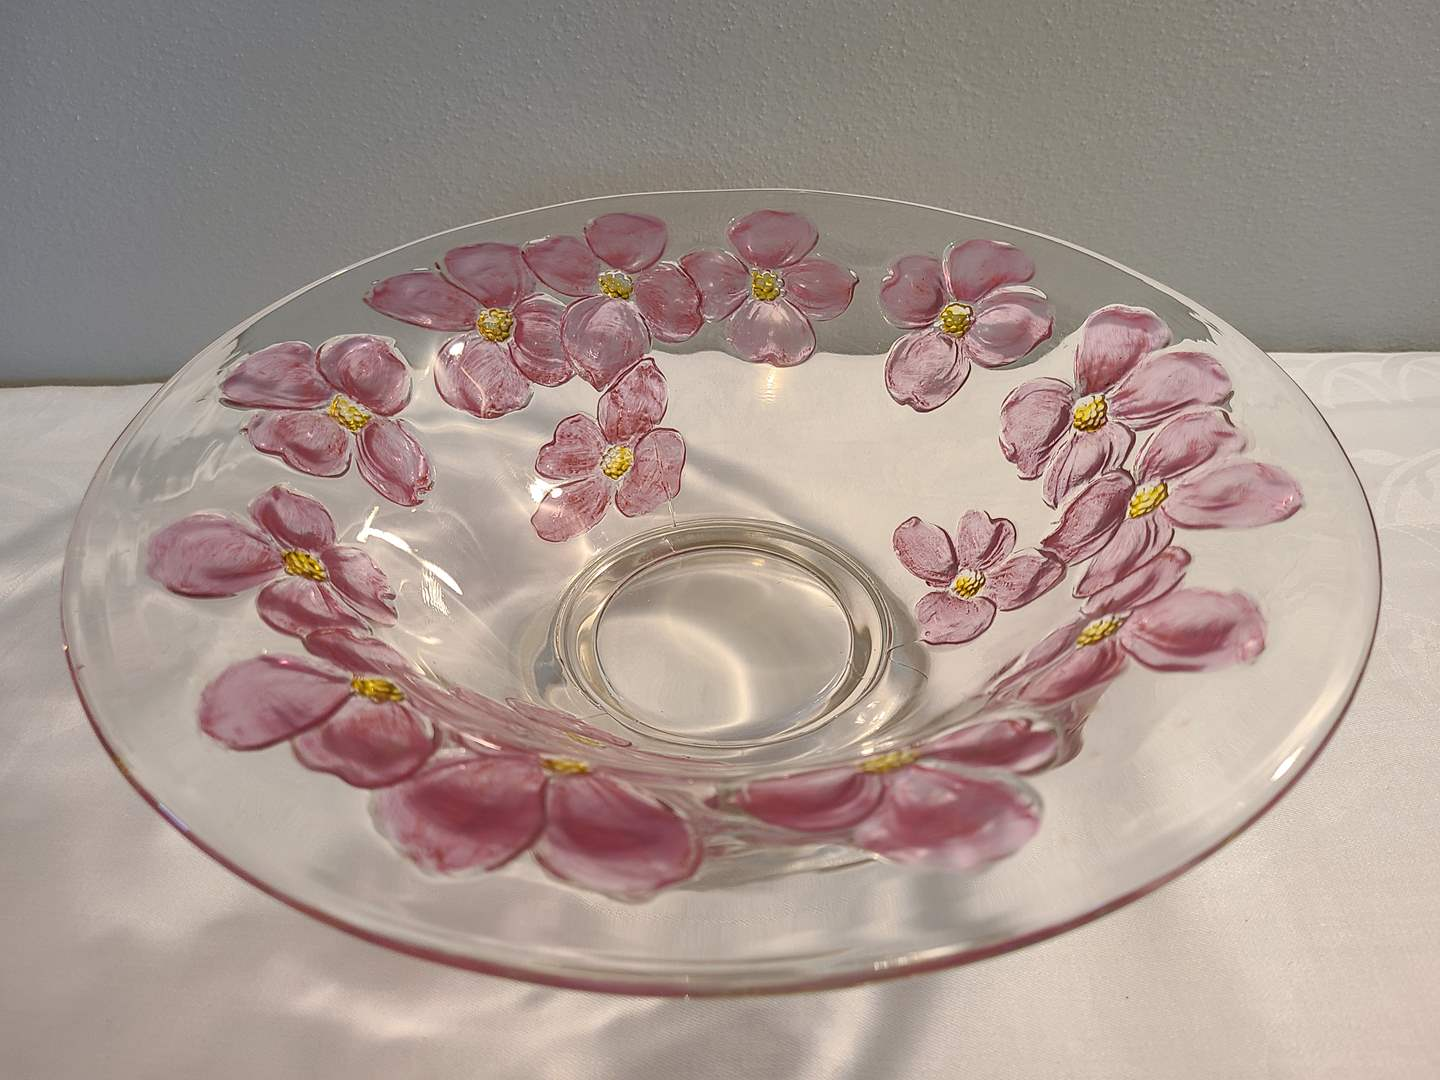 Lot# 151 - Stunning Flared Glass Bowl with Stylized Pink High Relief Flowers with Yellow Centers (main image)